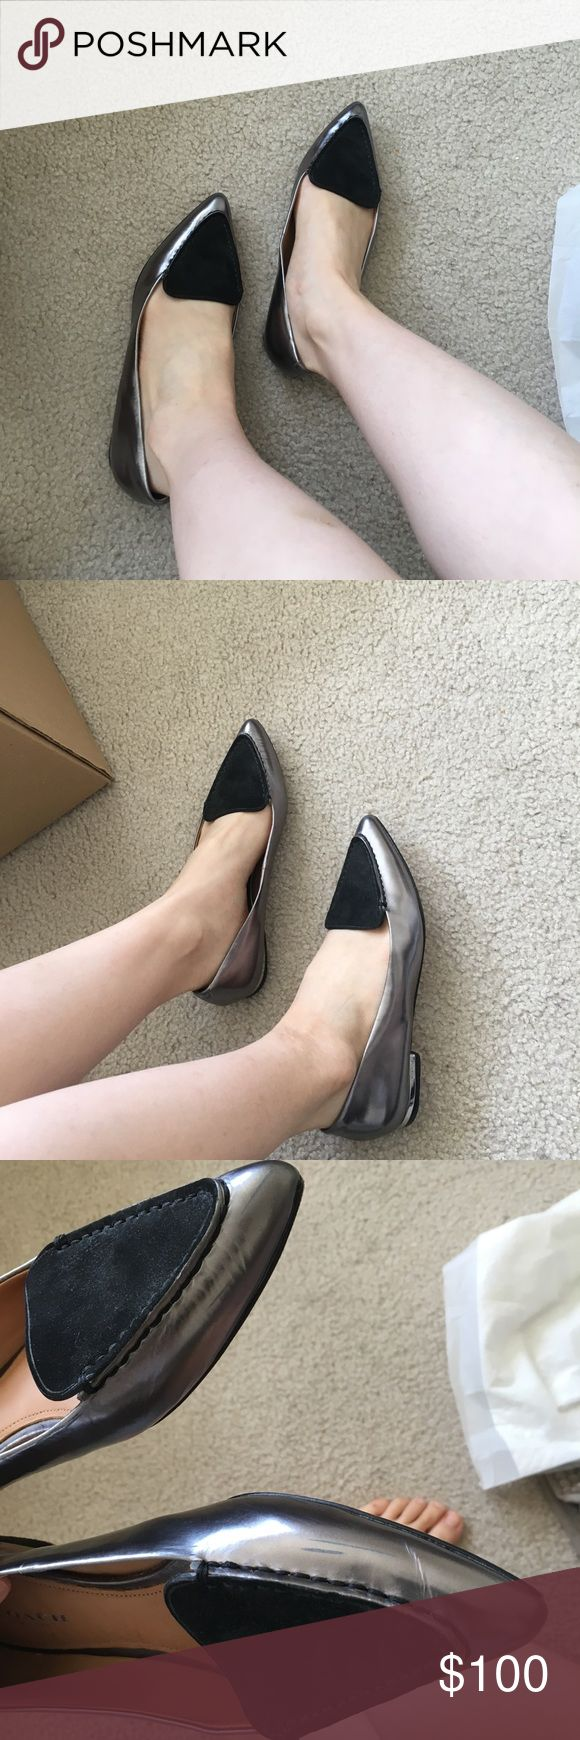 COACH flat shoes 90% New, worn one time In really good condition, slightly scratched. It's size 35, kinda small for me. Coach Shoes Flats & Loafers